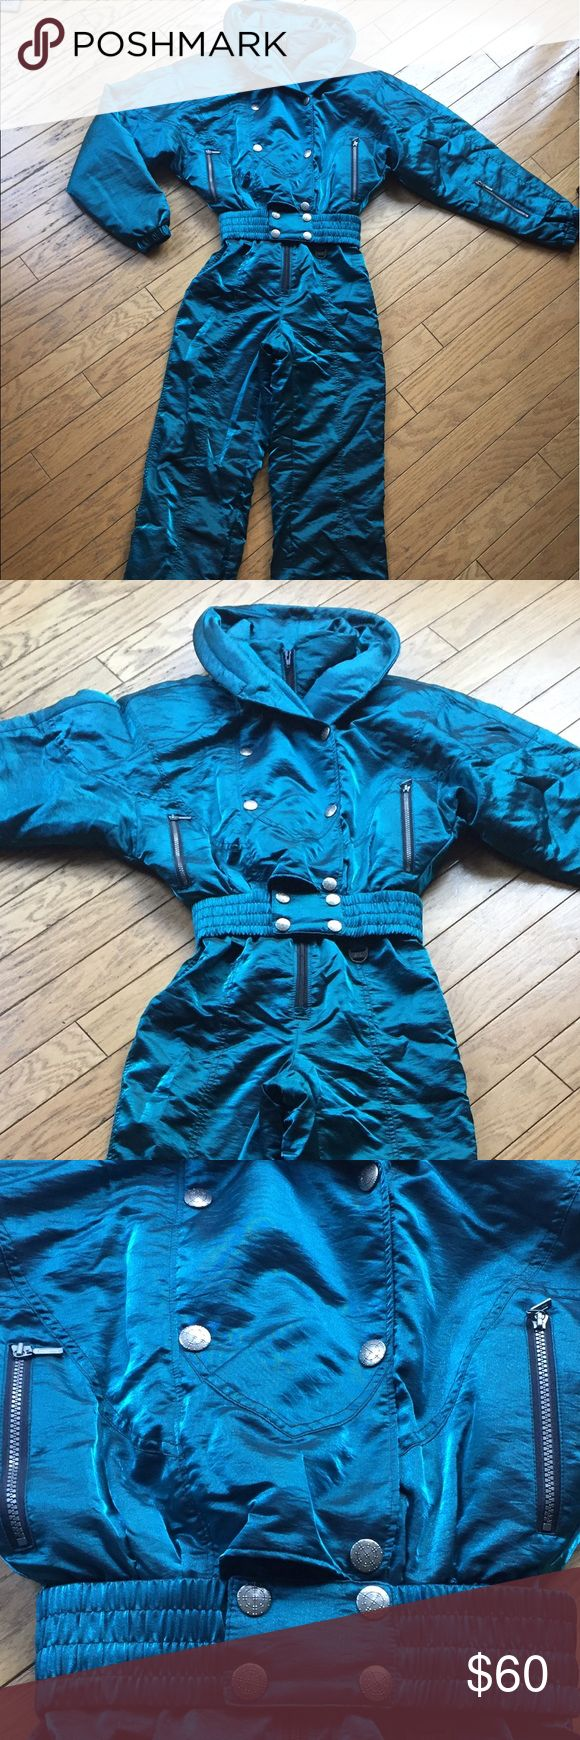 Women's Teal Snow Bunny Skiing Jumpsuit Size 10 High quality metallic shiny teal women's snowboarding and skiing outfit in the classic 1980s snow bunny style. Women's regular size 10. Excellent condition only used a few times, this jump suit is SO comfortable and great for staying warm and dry, sadly too big on me now so I'm selling it even though I wish I didn't have to. Water resistant fabric with lots of lining to keep you cozy. Make me an offer if you're interested! I discount bundles 😘…